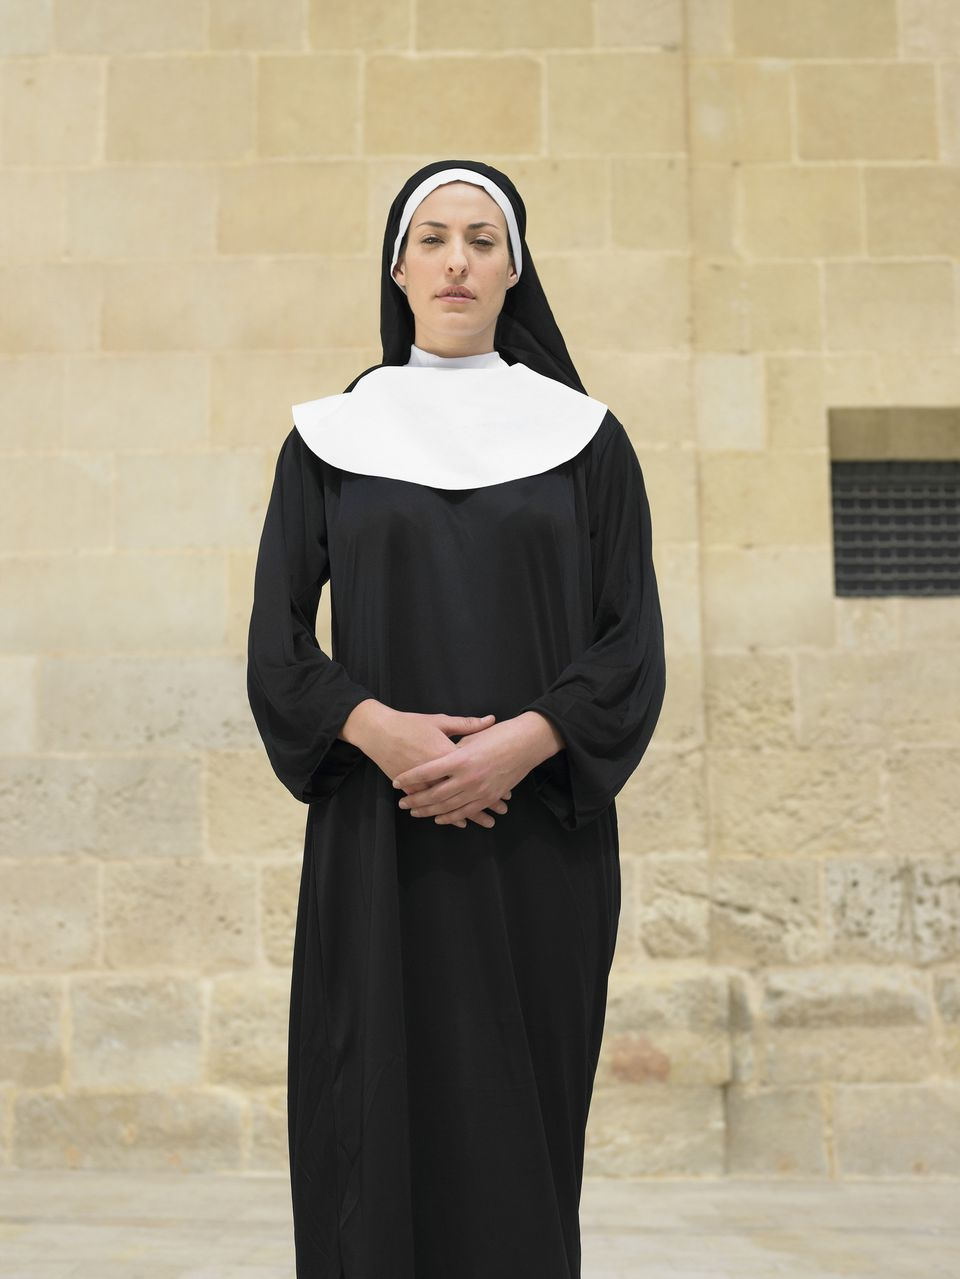 A nun in habit